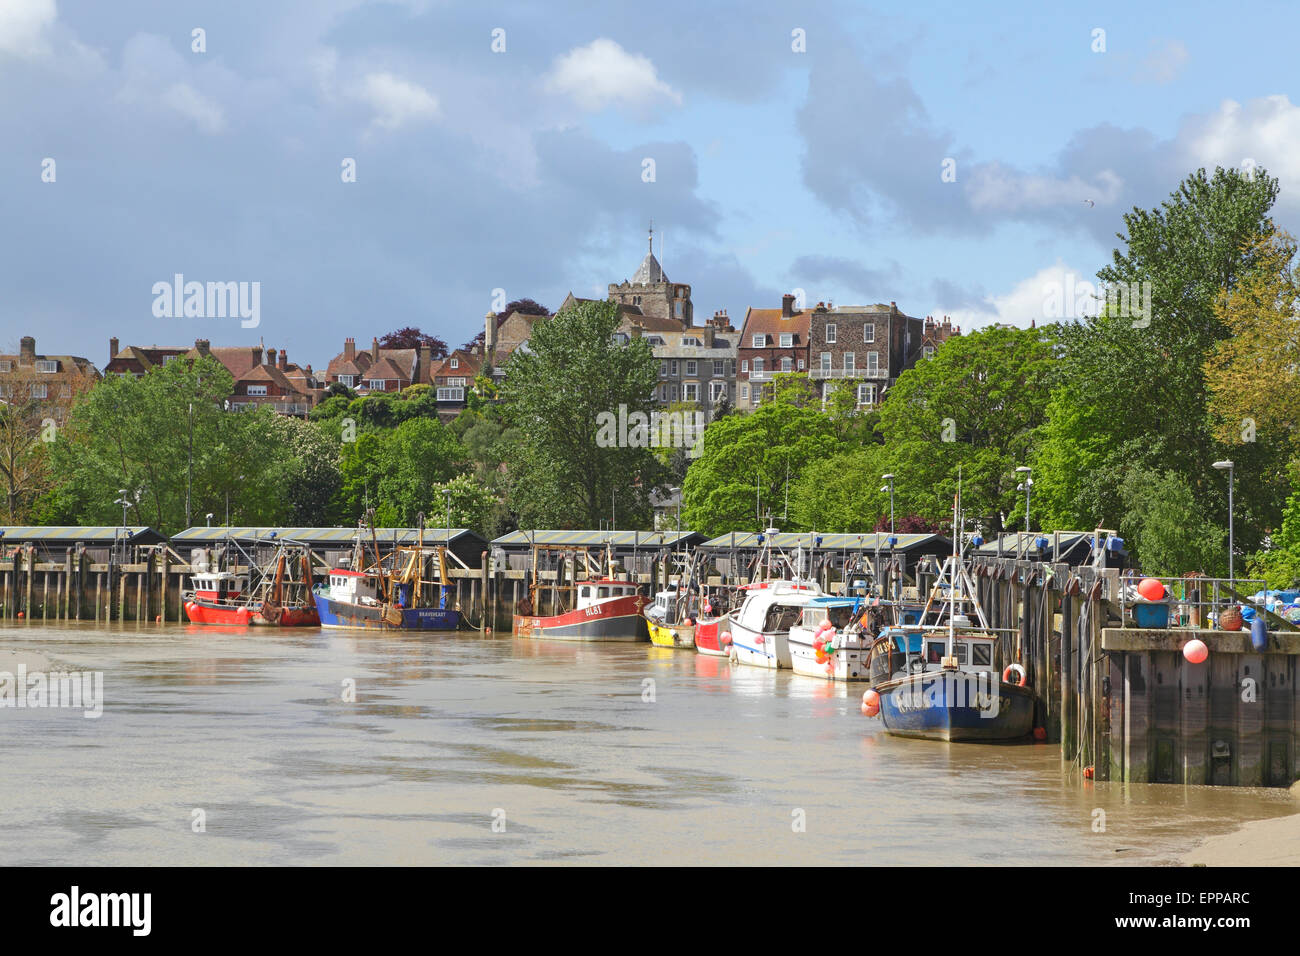 Fishing boats moored at Simmons Quay, Rye, East Sussex, GB, UK - Stock Image